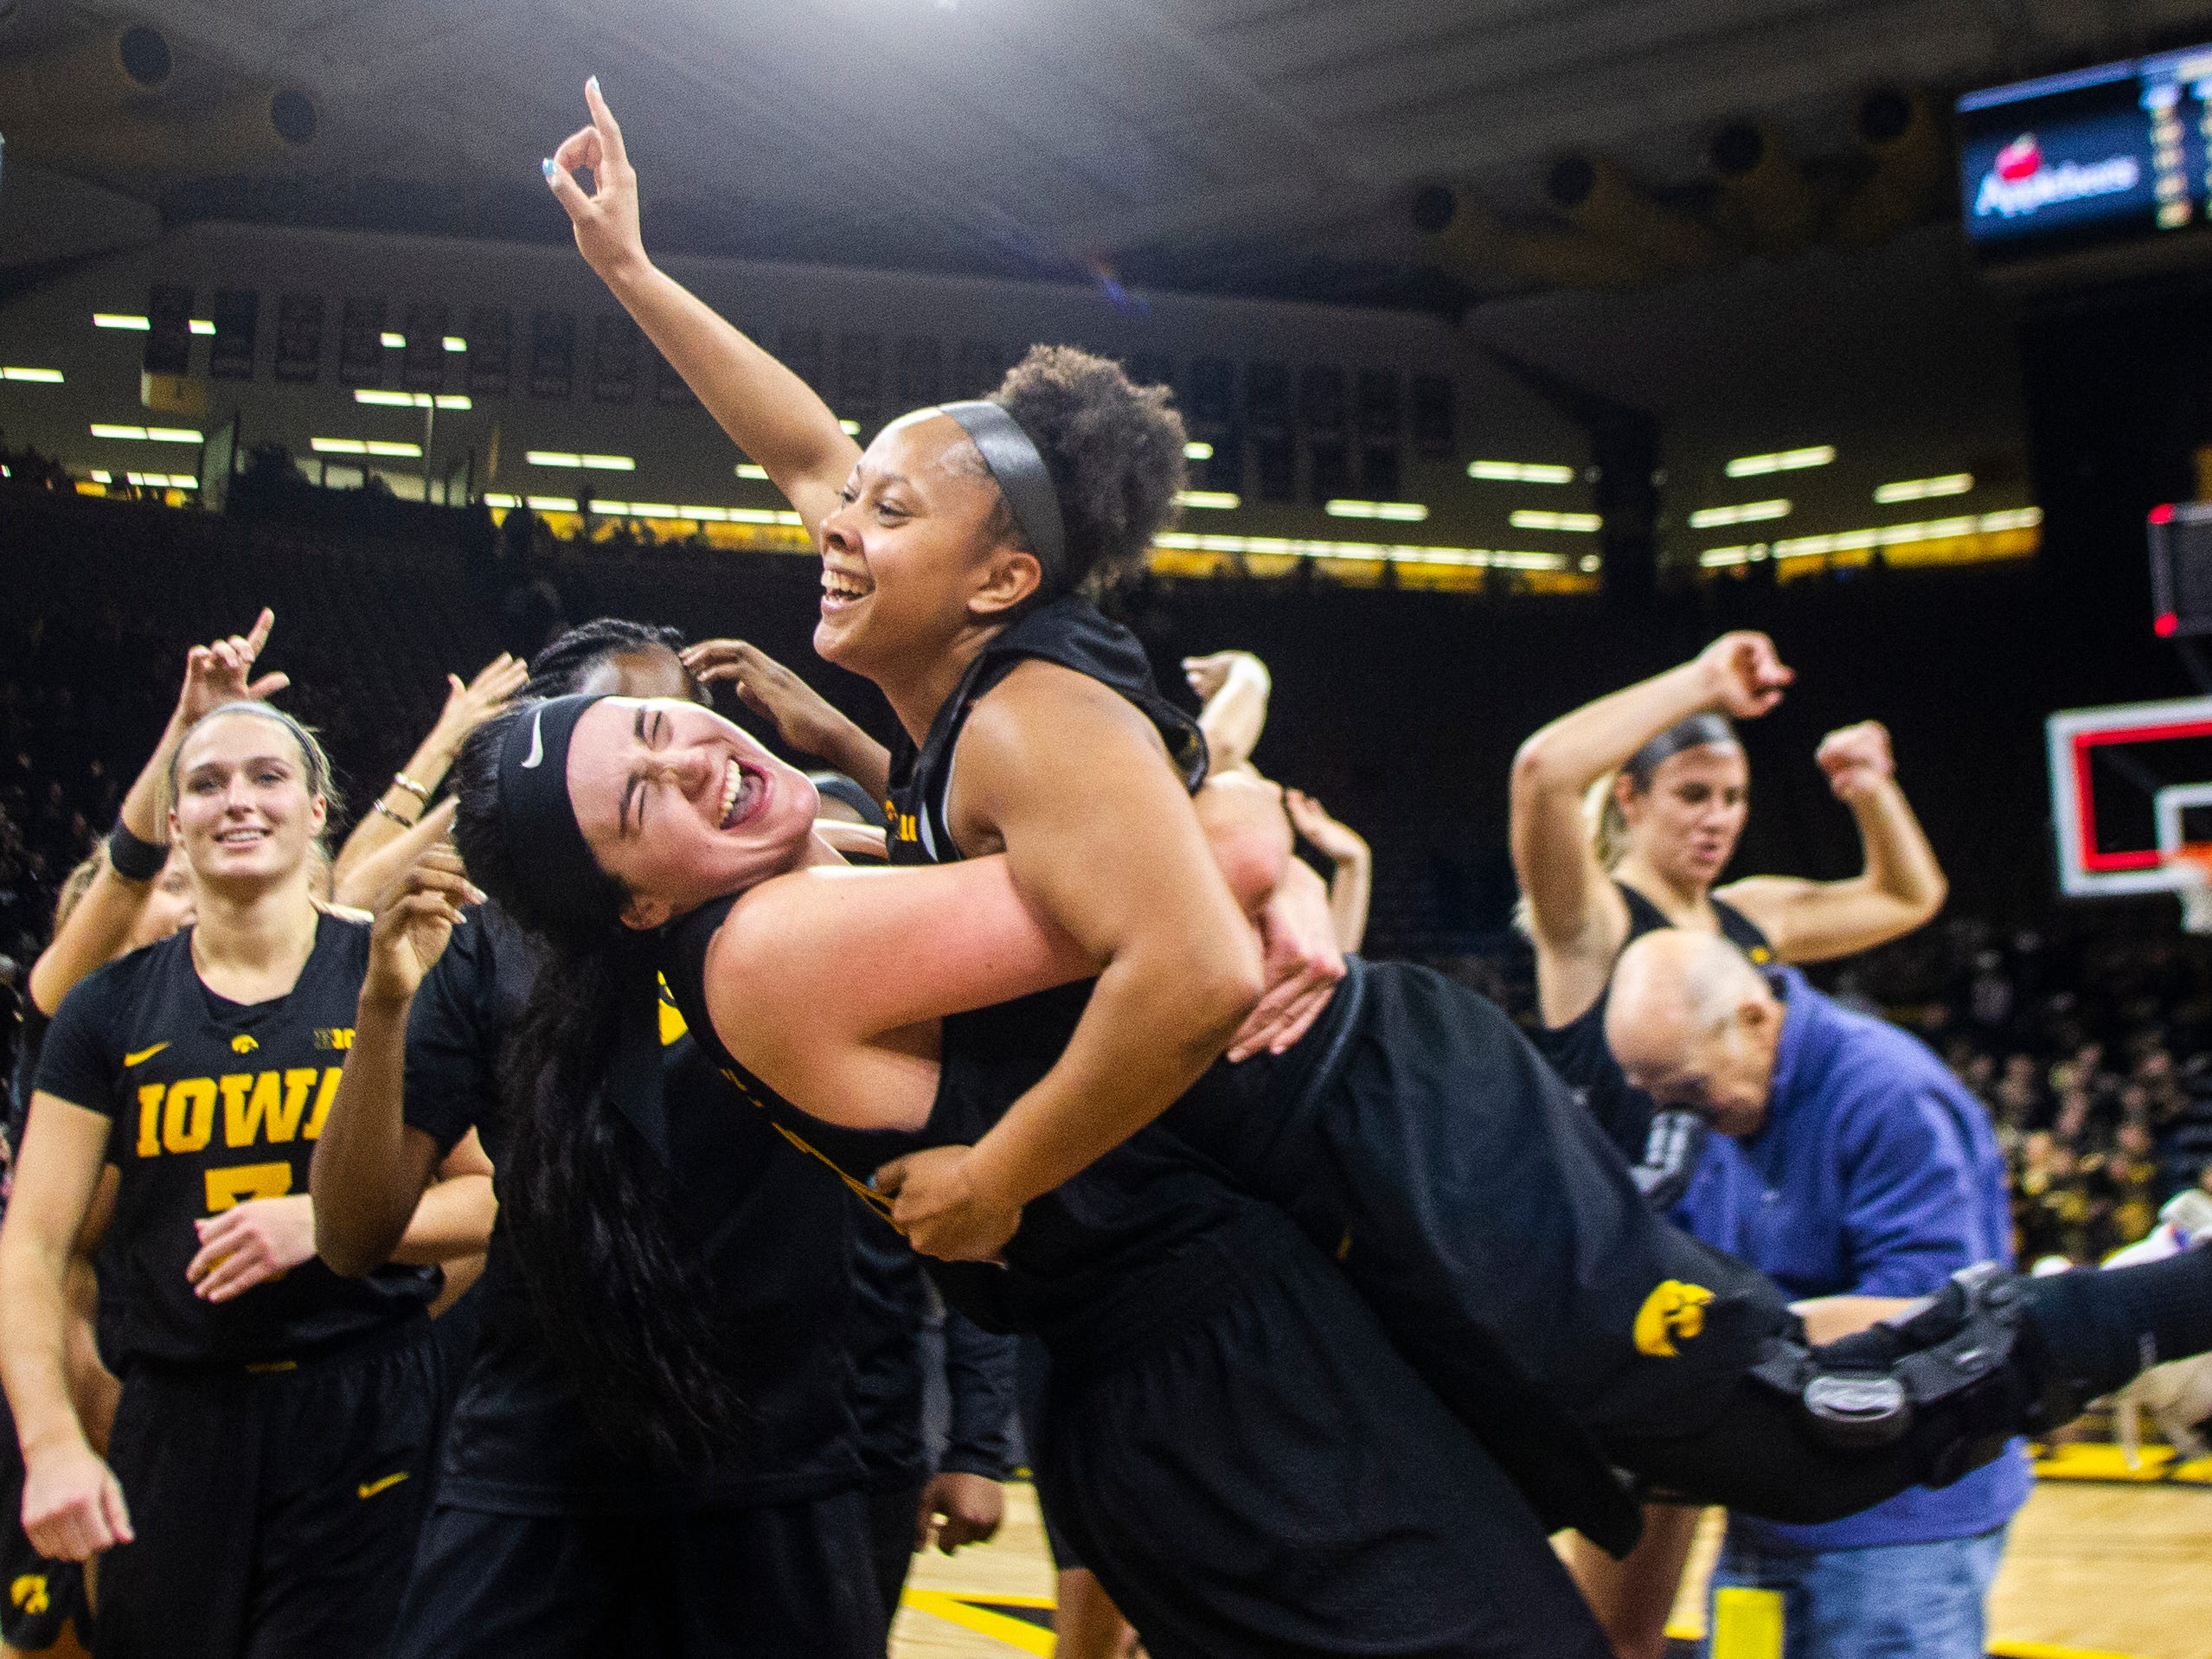 Iowa forward Megan Gustafson (10) embraces Iowa guard Tania Davis (11) after a Cy-Hawk series NCAA women's basketball game on Wednesday, Dec. 5, 2018, at Carver-Hawkeye Arena in Iowa City. The Hawkeyes defeated the Cyclones, 73-70.